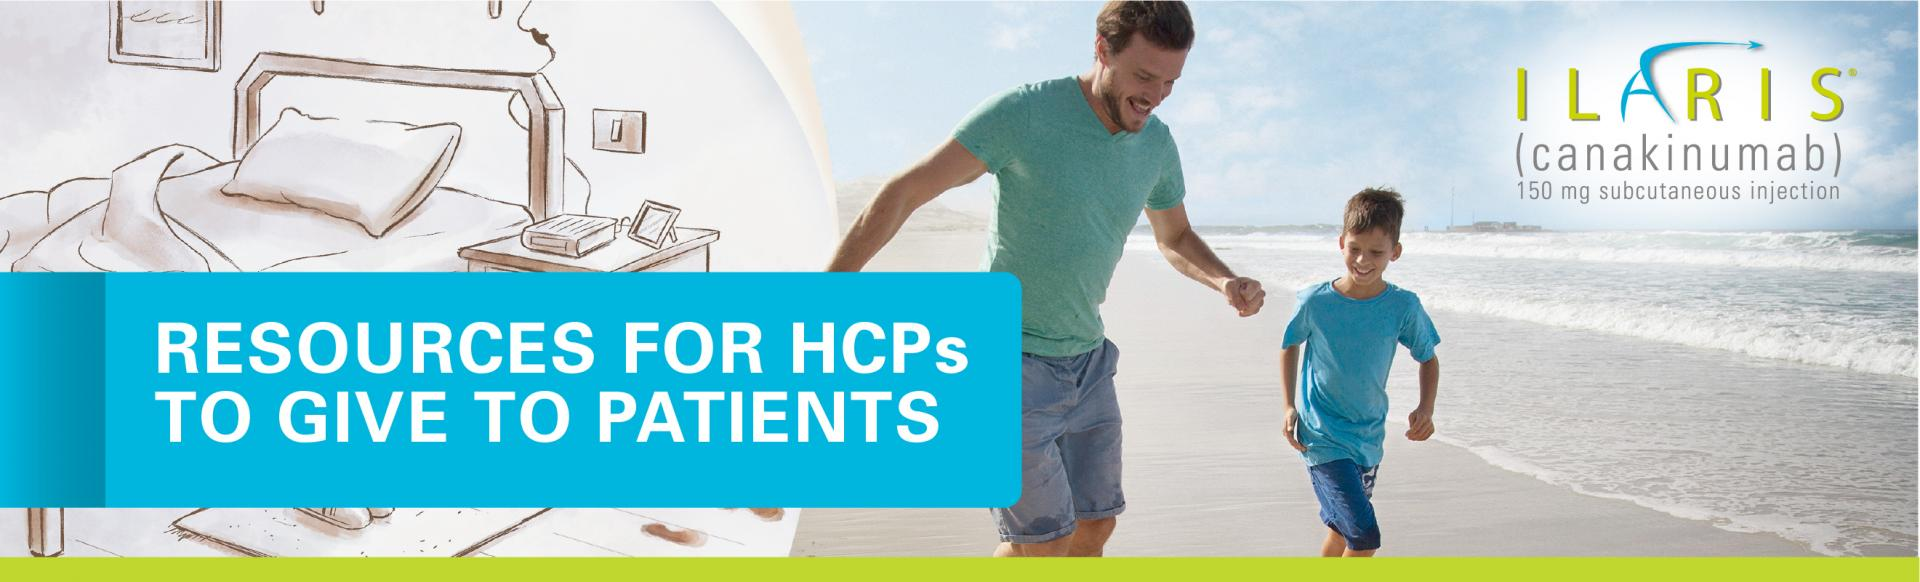 Top banner. Resources for HCPs to give to patients